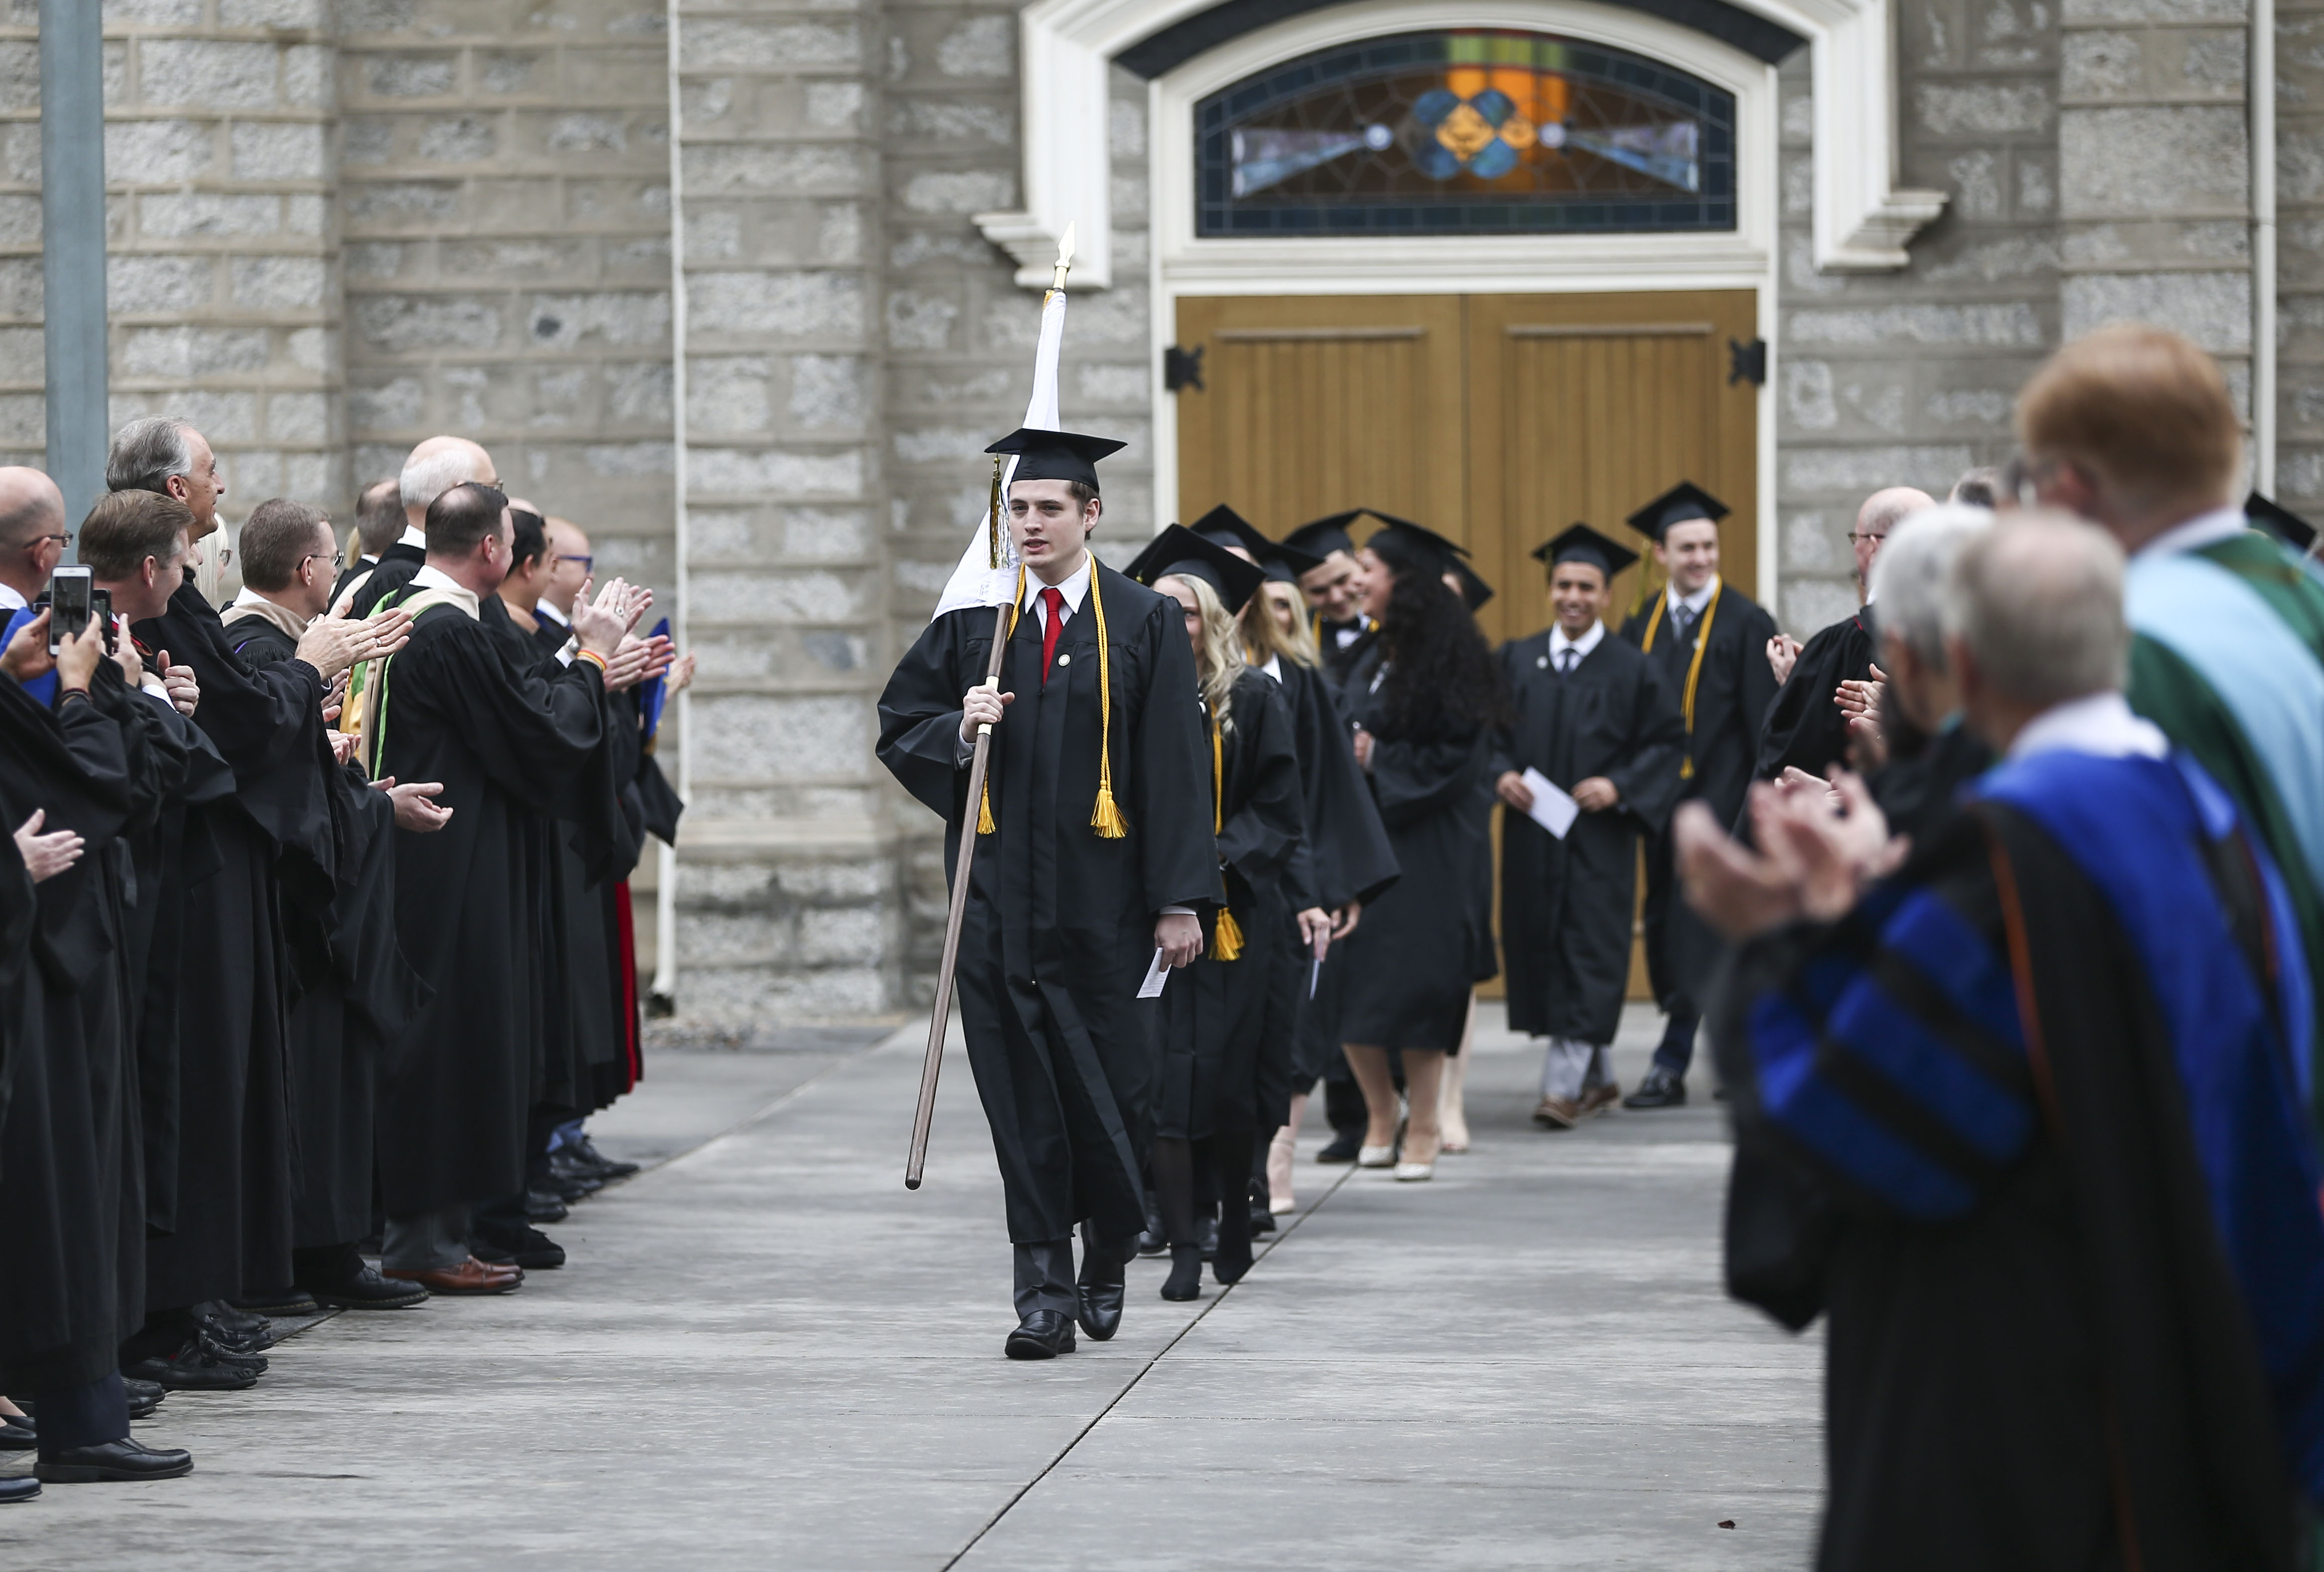 Students from the LDS business college walk to the Tabernacle on Temple Square for their commencement ceremony in Salt Lake City on Friday, April 12, 2019.